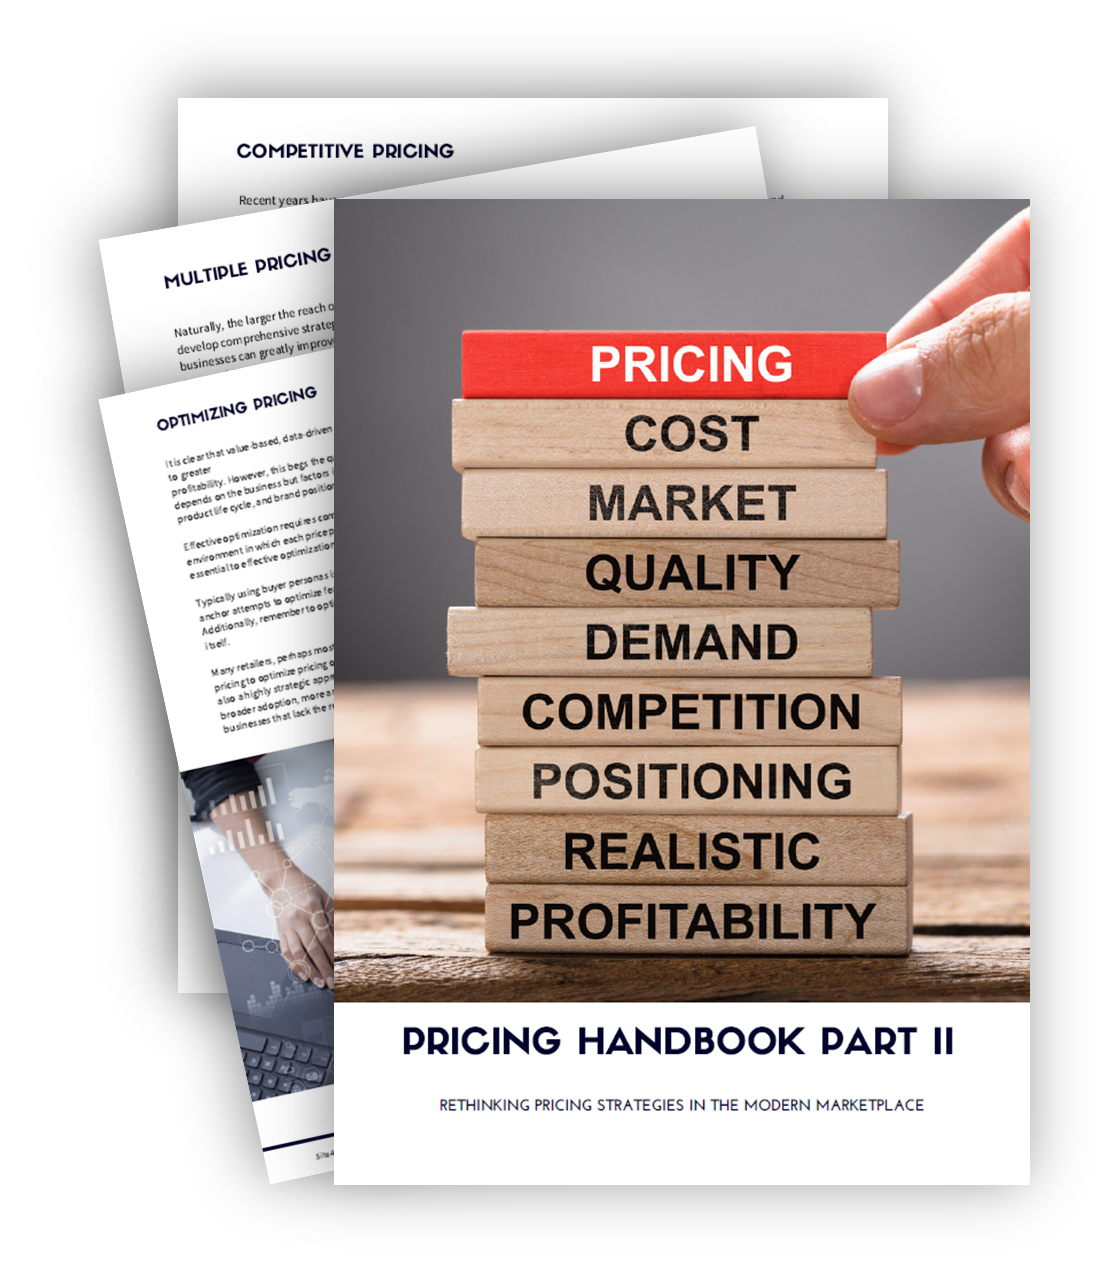 Pricing Handbook II - From value-based pricing to technology-driven dynamic pricing at Amazon